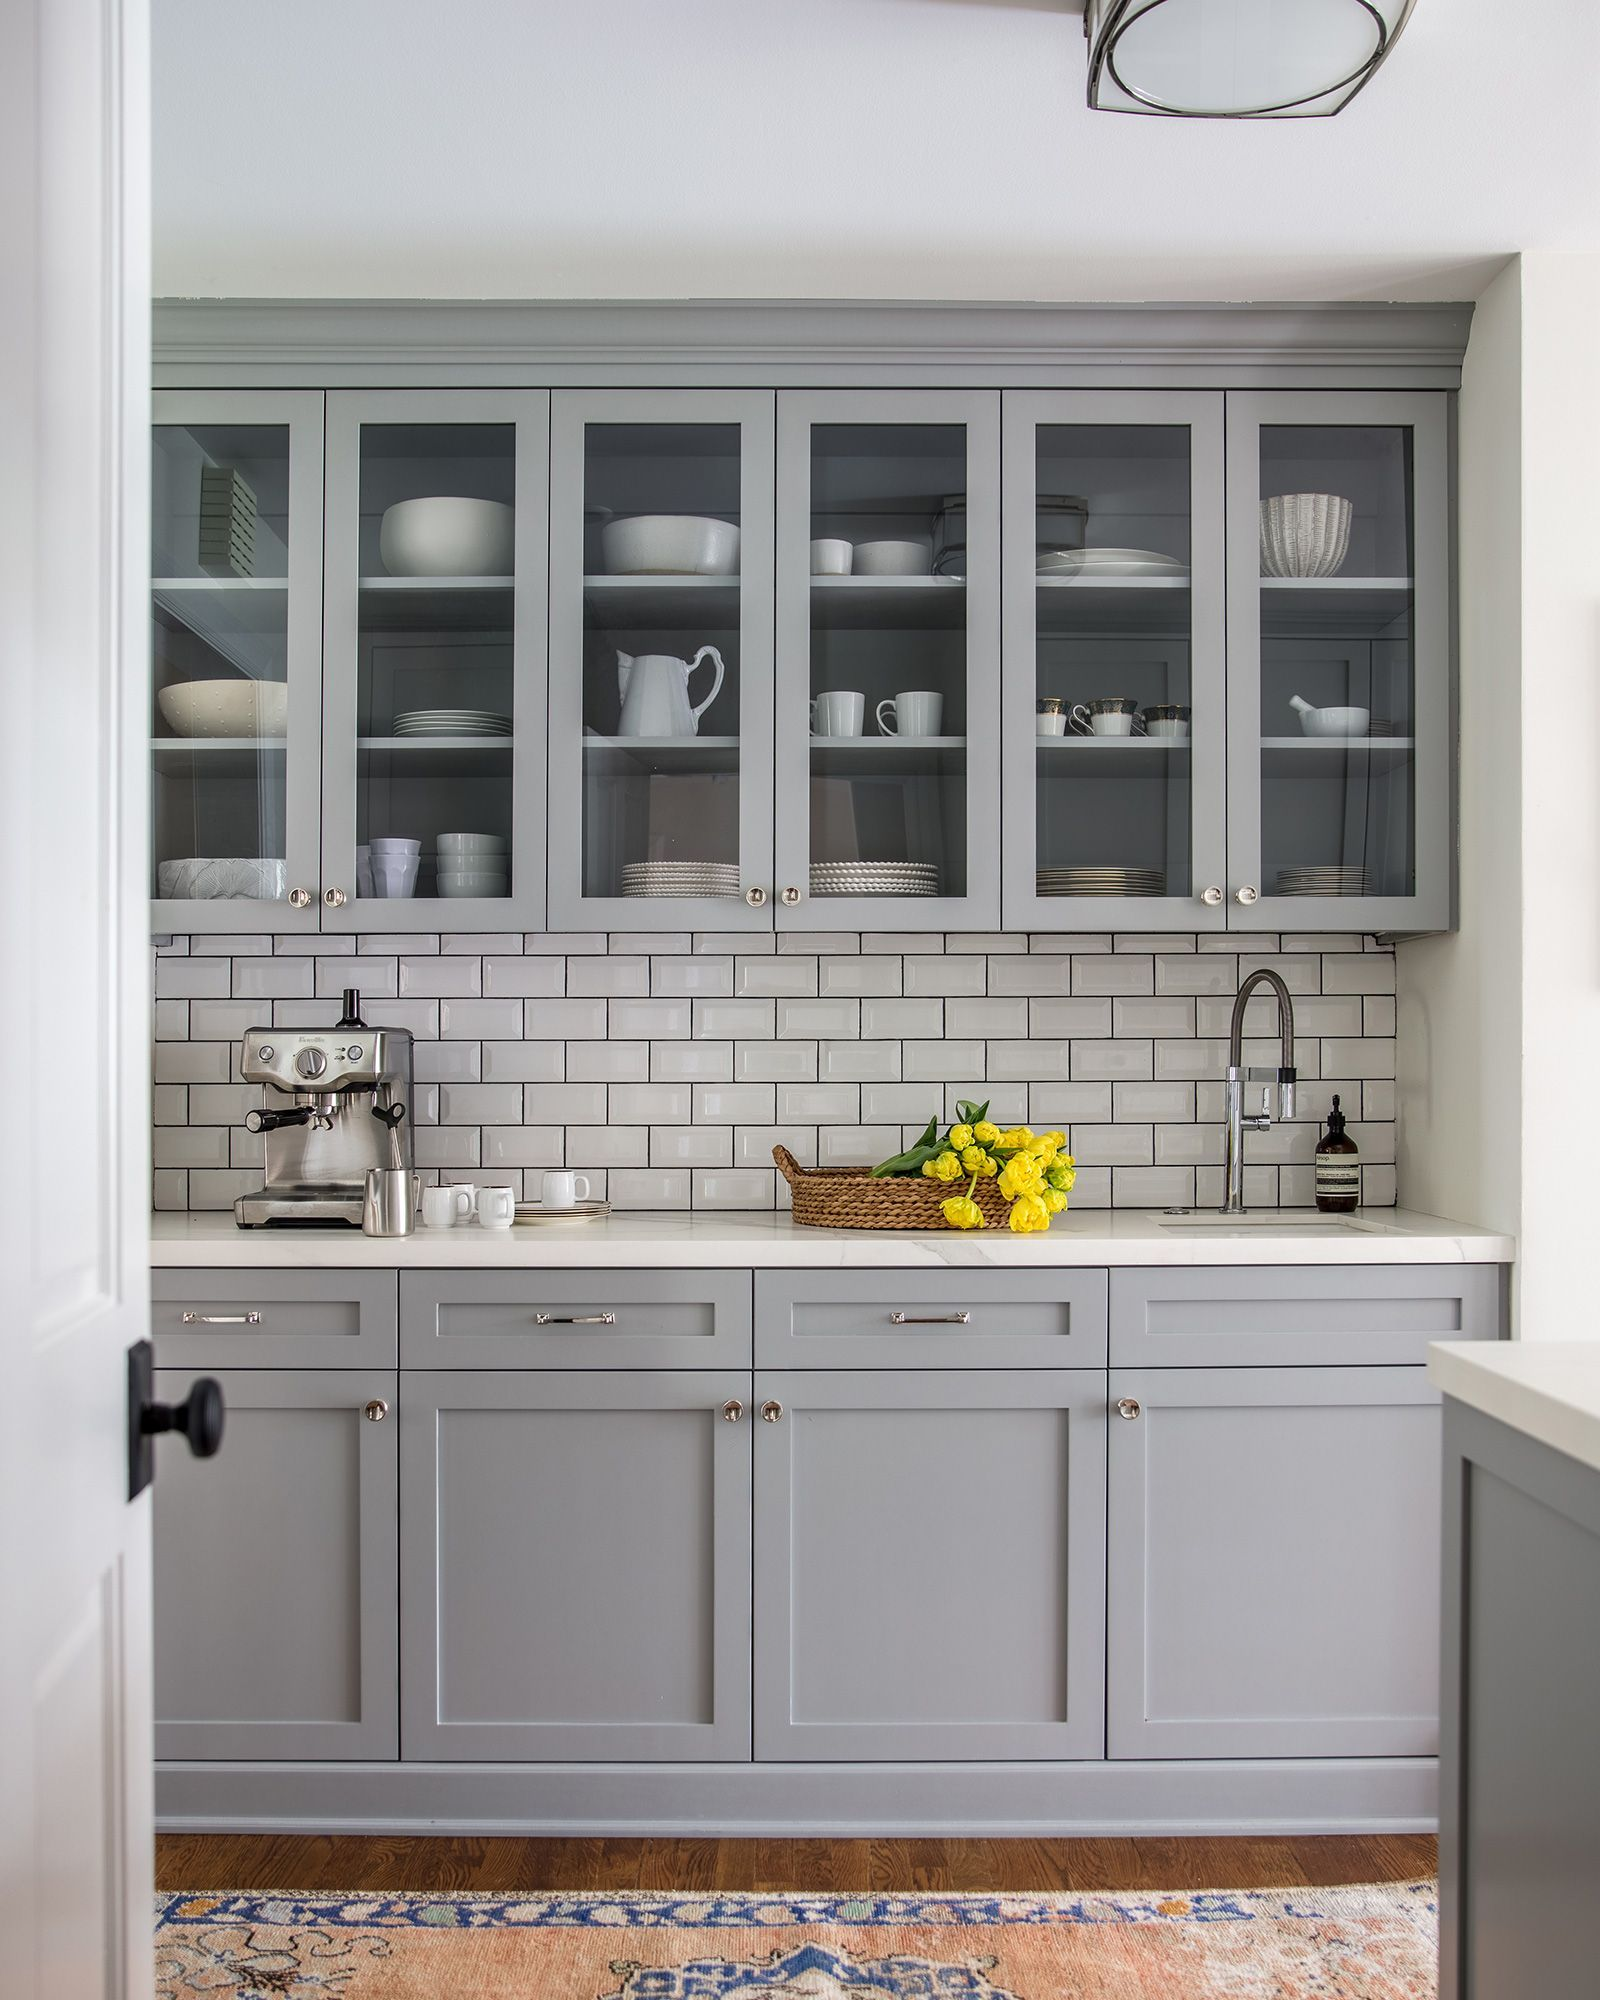 Blue Gray Cabinetry In The Kitchen With White Subway Tile And Dark